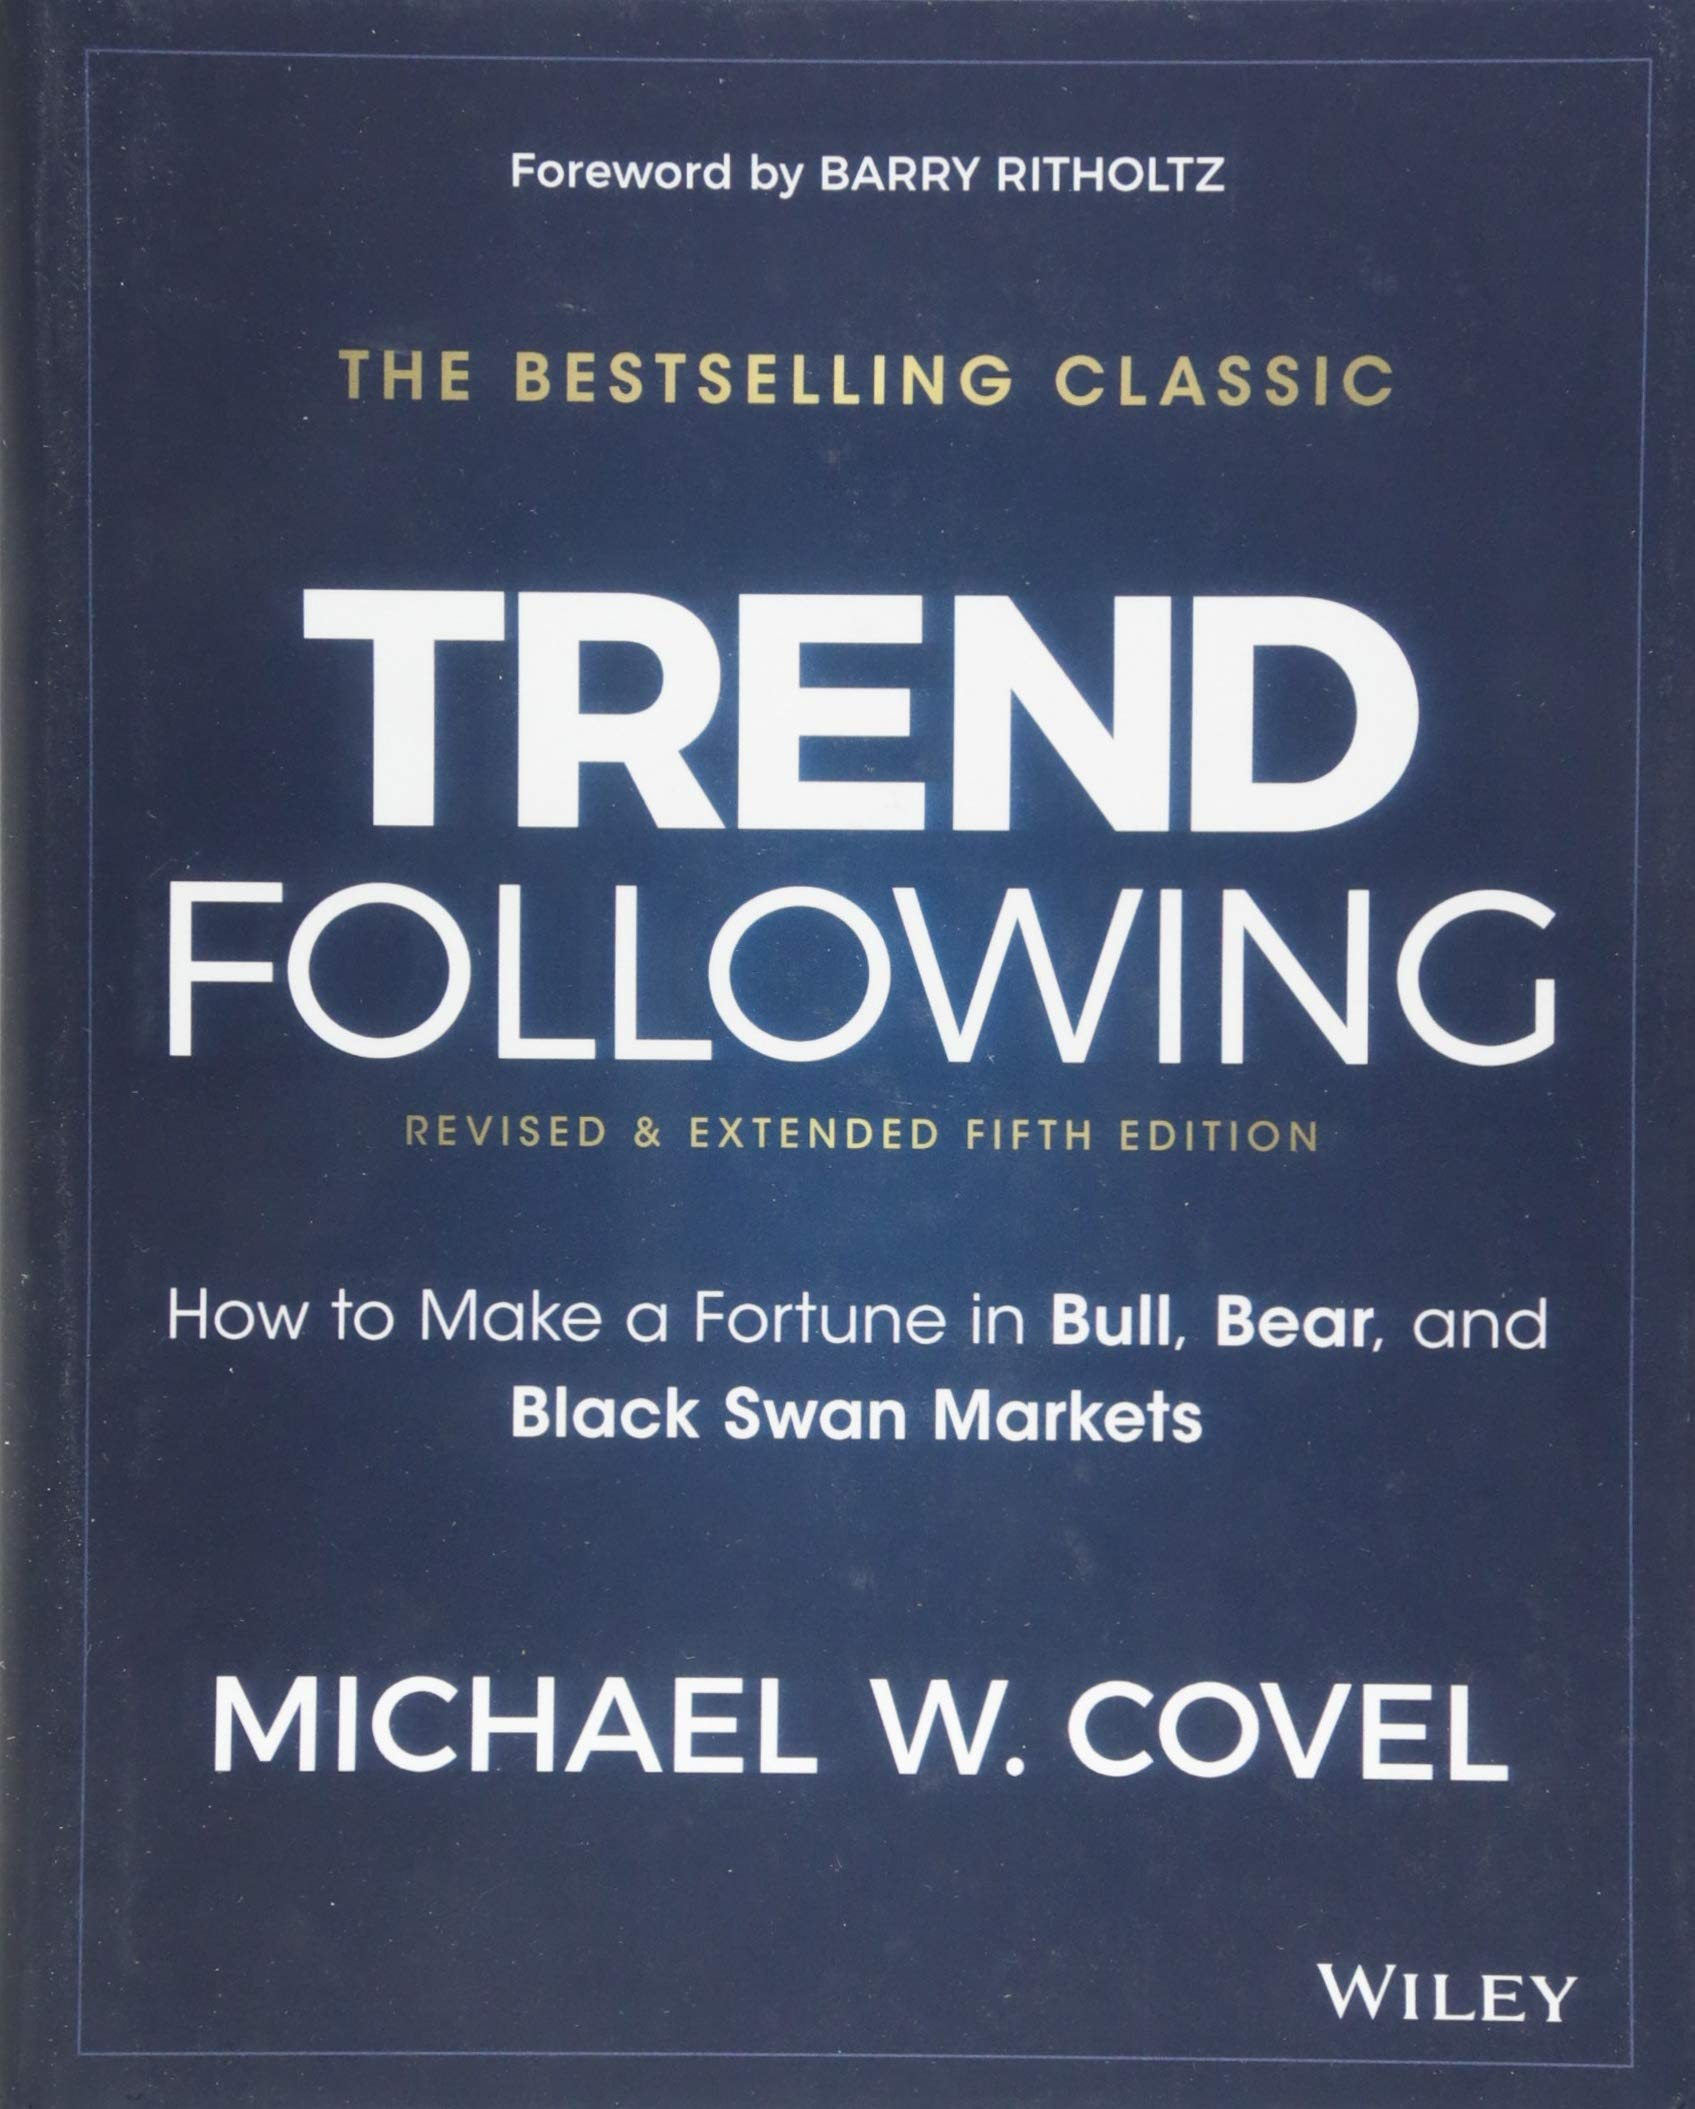 Trend Following, 5th Edition: How to Make a Fortune in Bull, Bear and Black  Swan Markets (Wiley Trading): Michael W. Covel, Barry Ritholtz:  9781119371878: ...